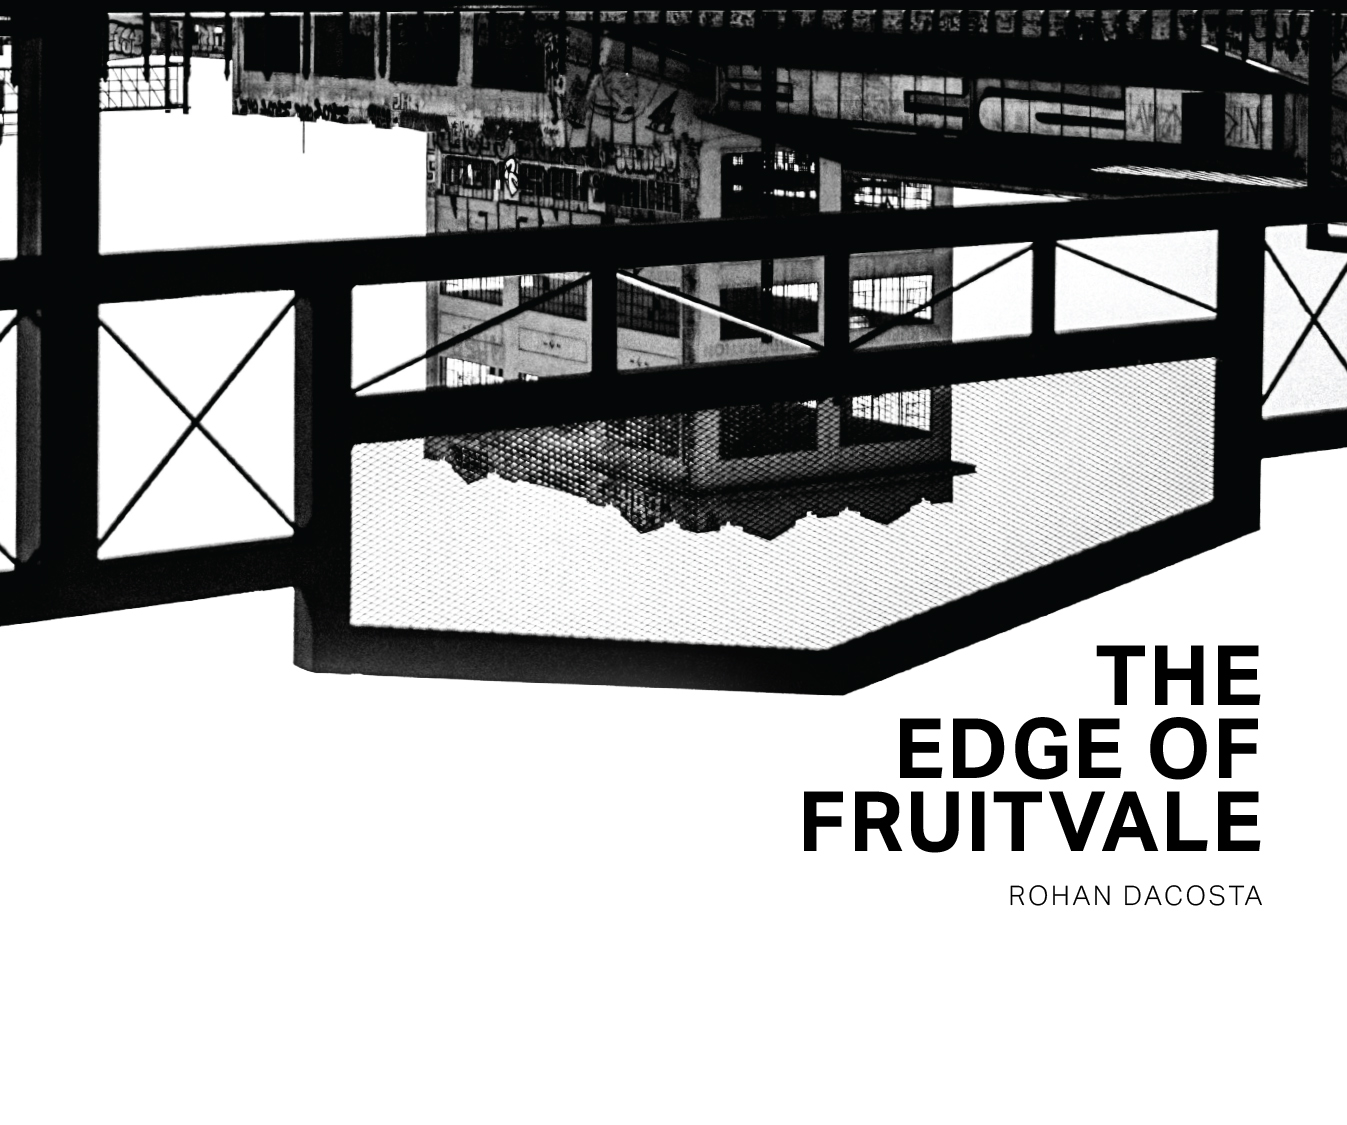 The Edge of Fruitvale